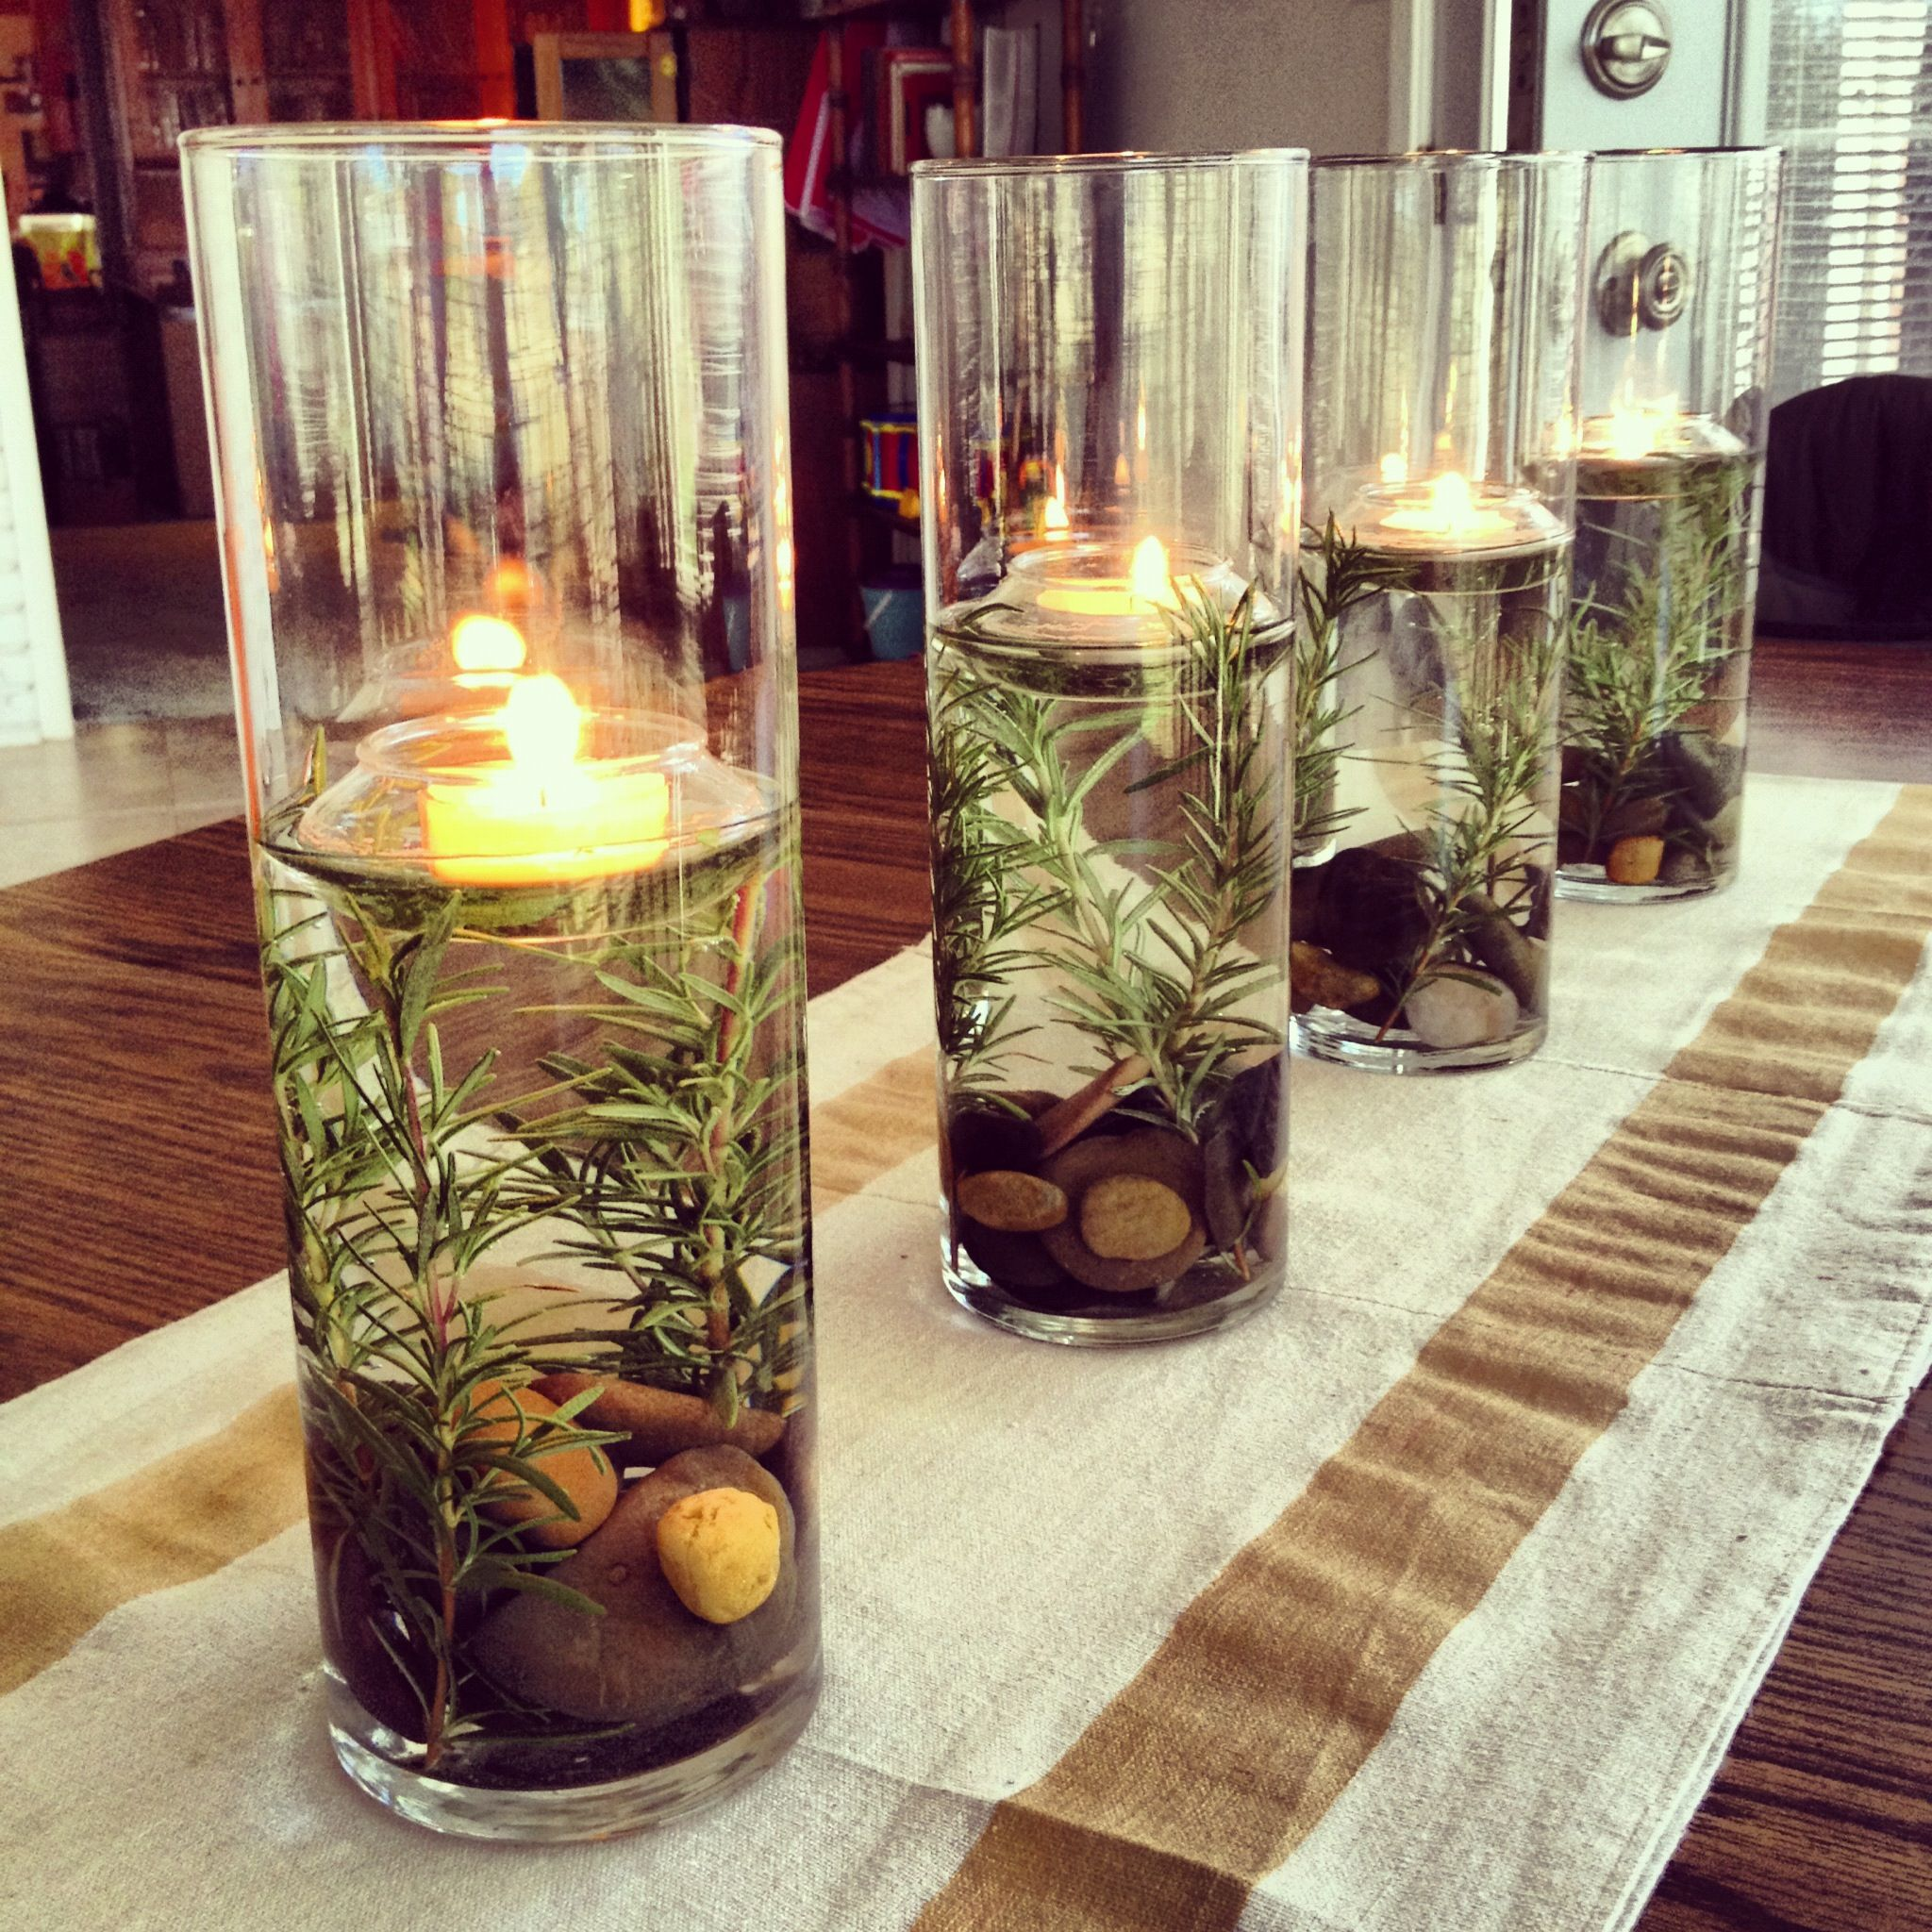 festive centerpiece river rocks rosemary floating tealights